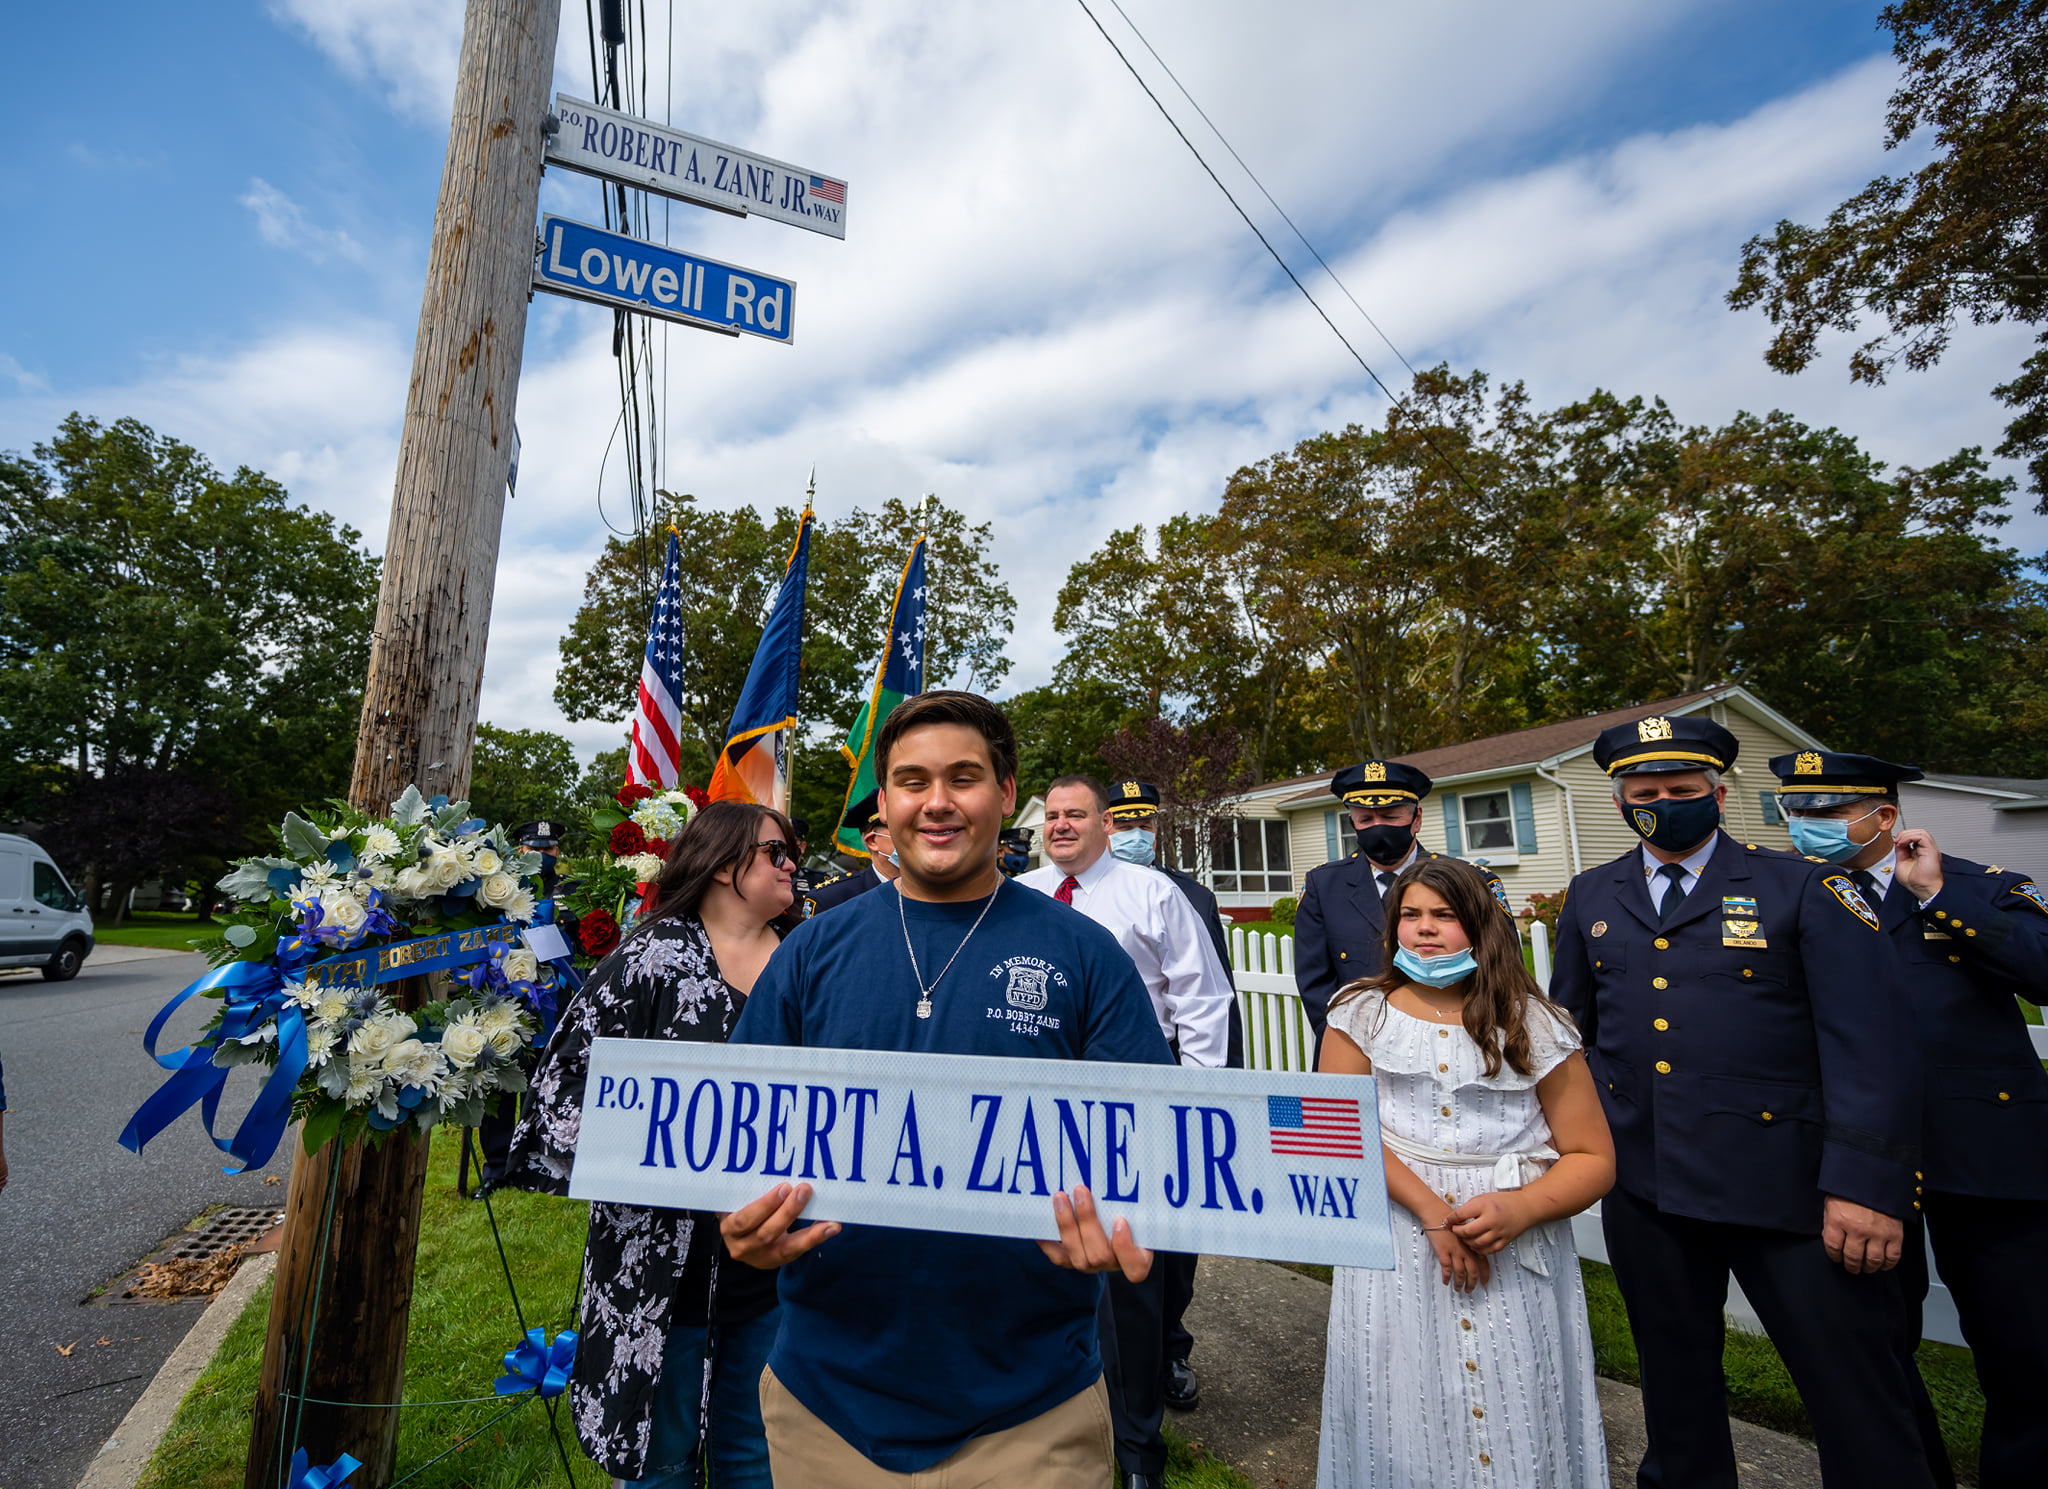 Robert's Son, proudly holds the street sign with his dad's name